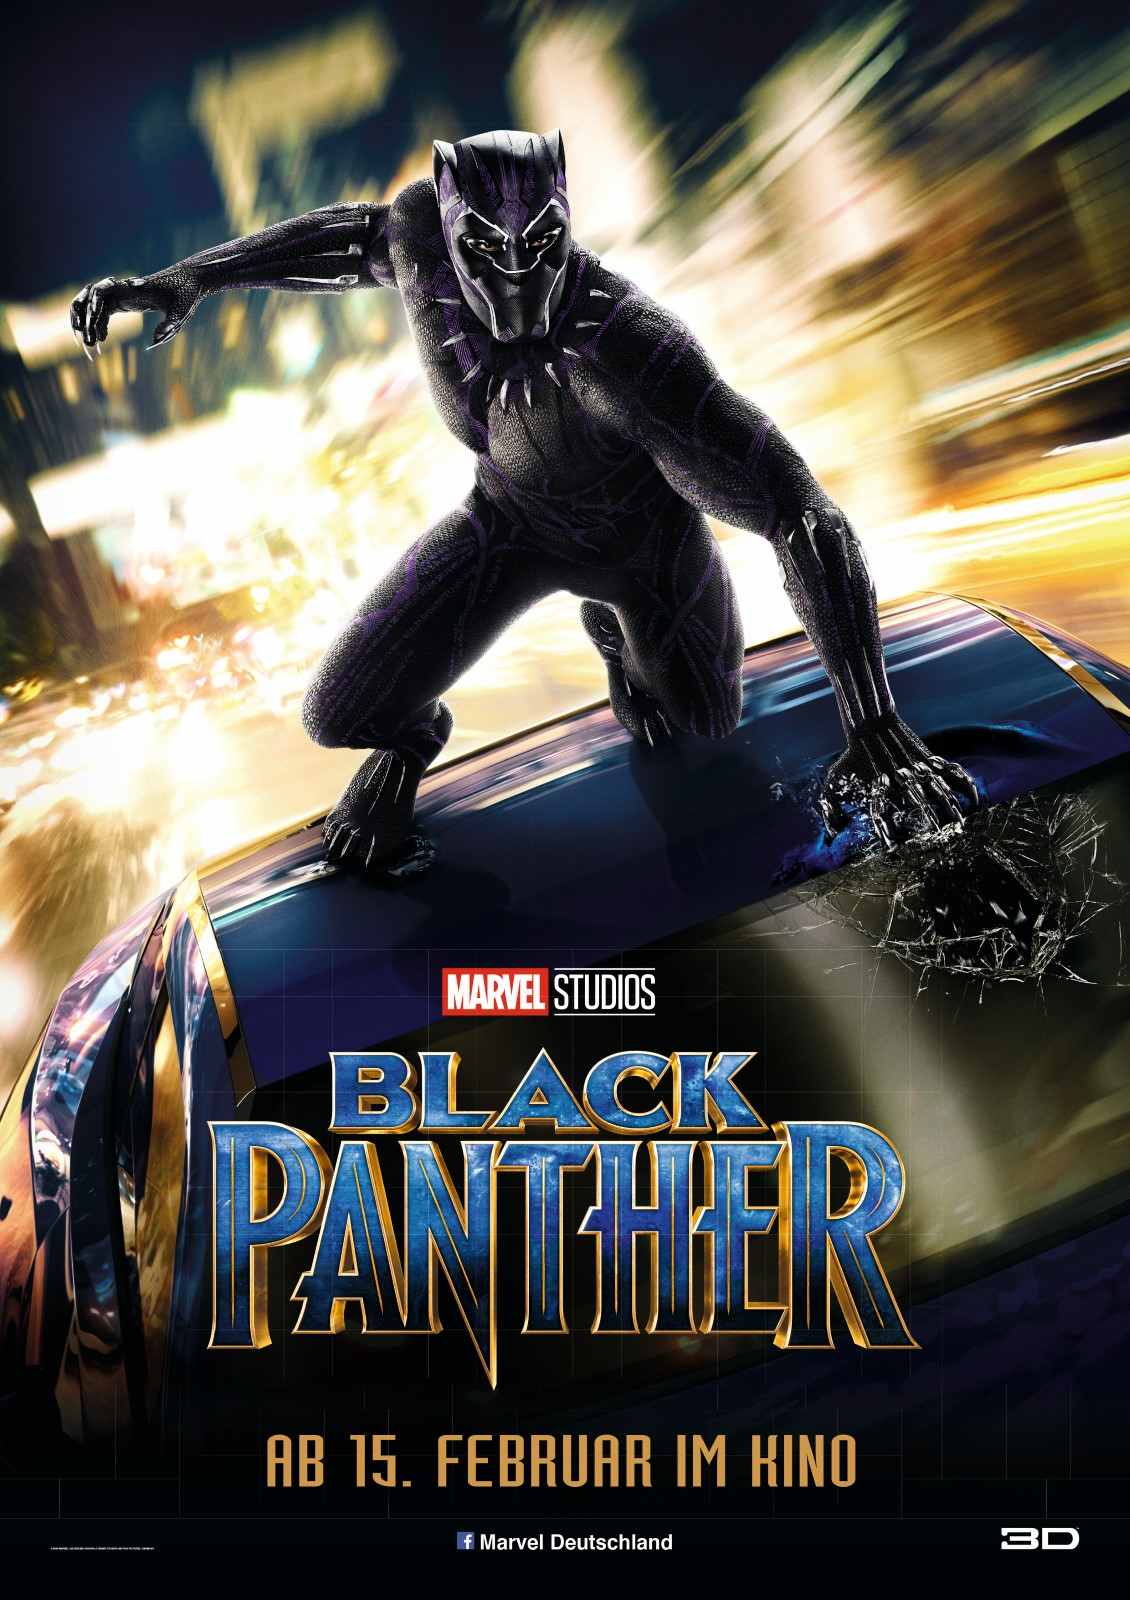 Black panther movie posters for sale